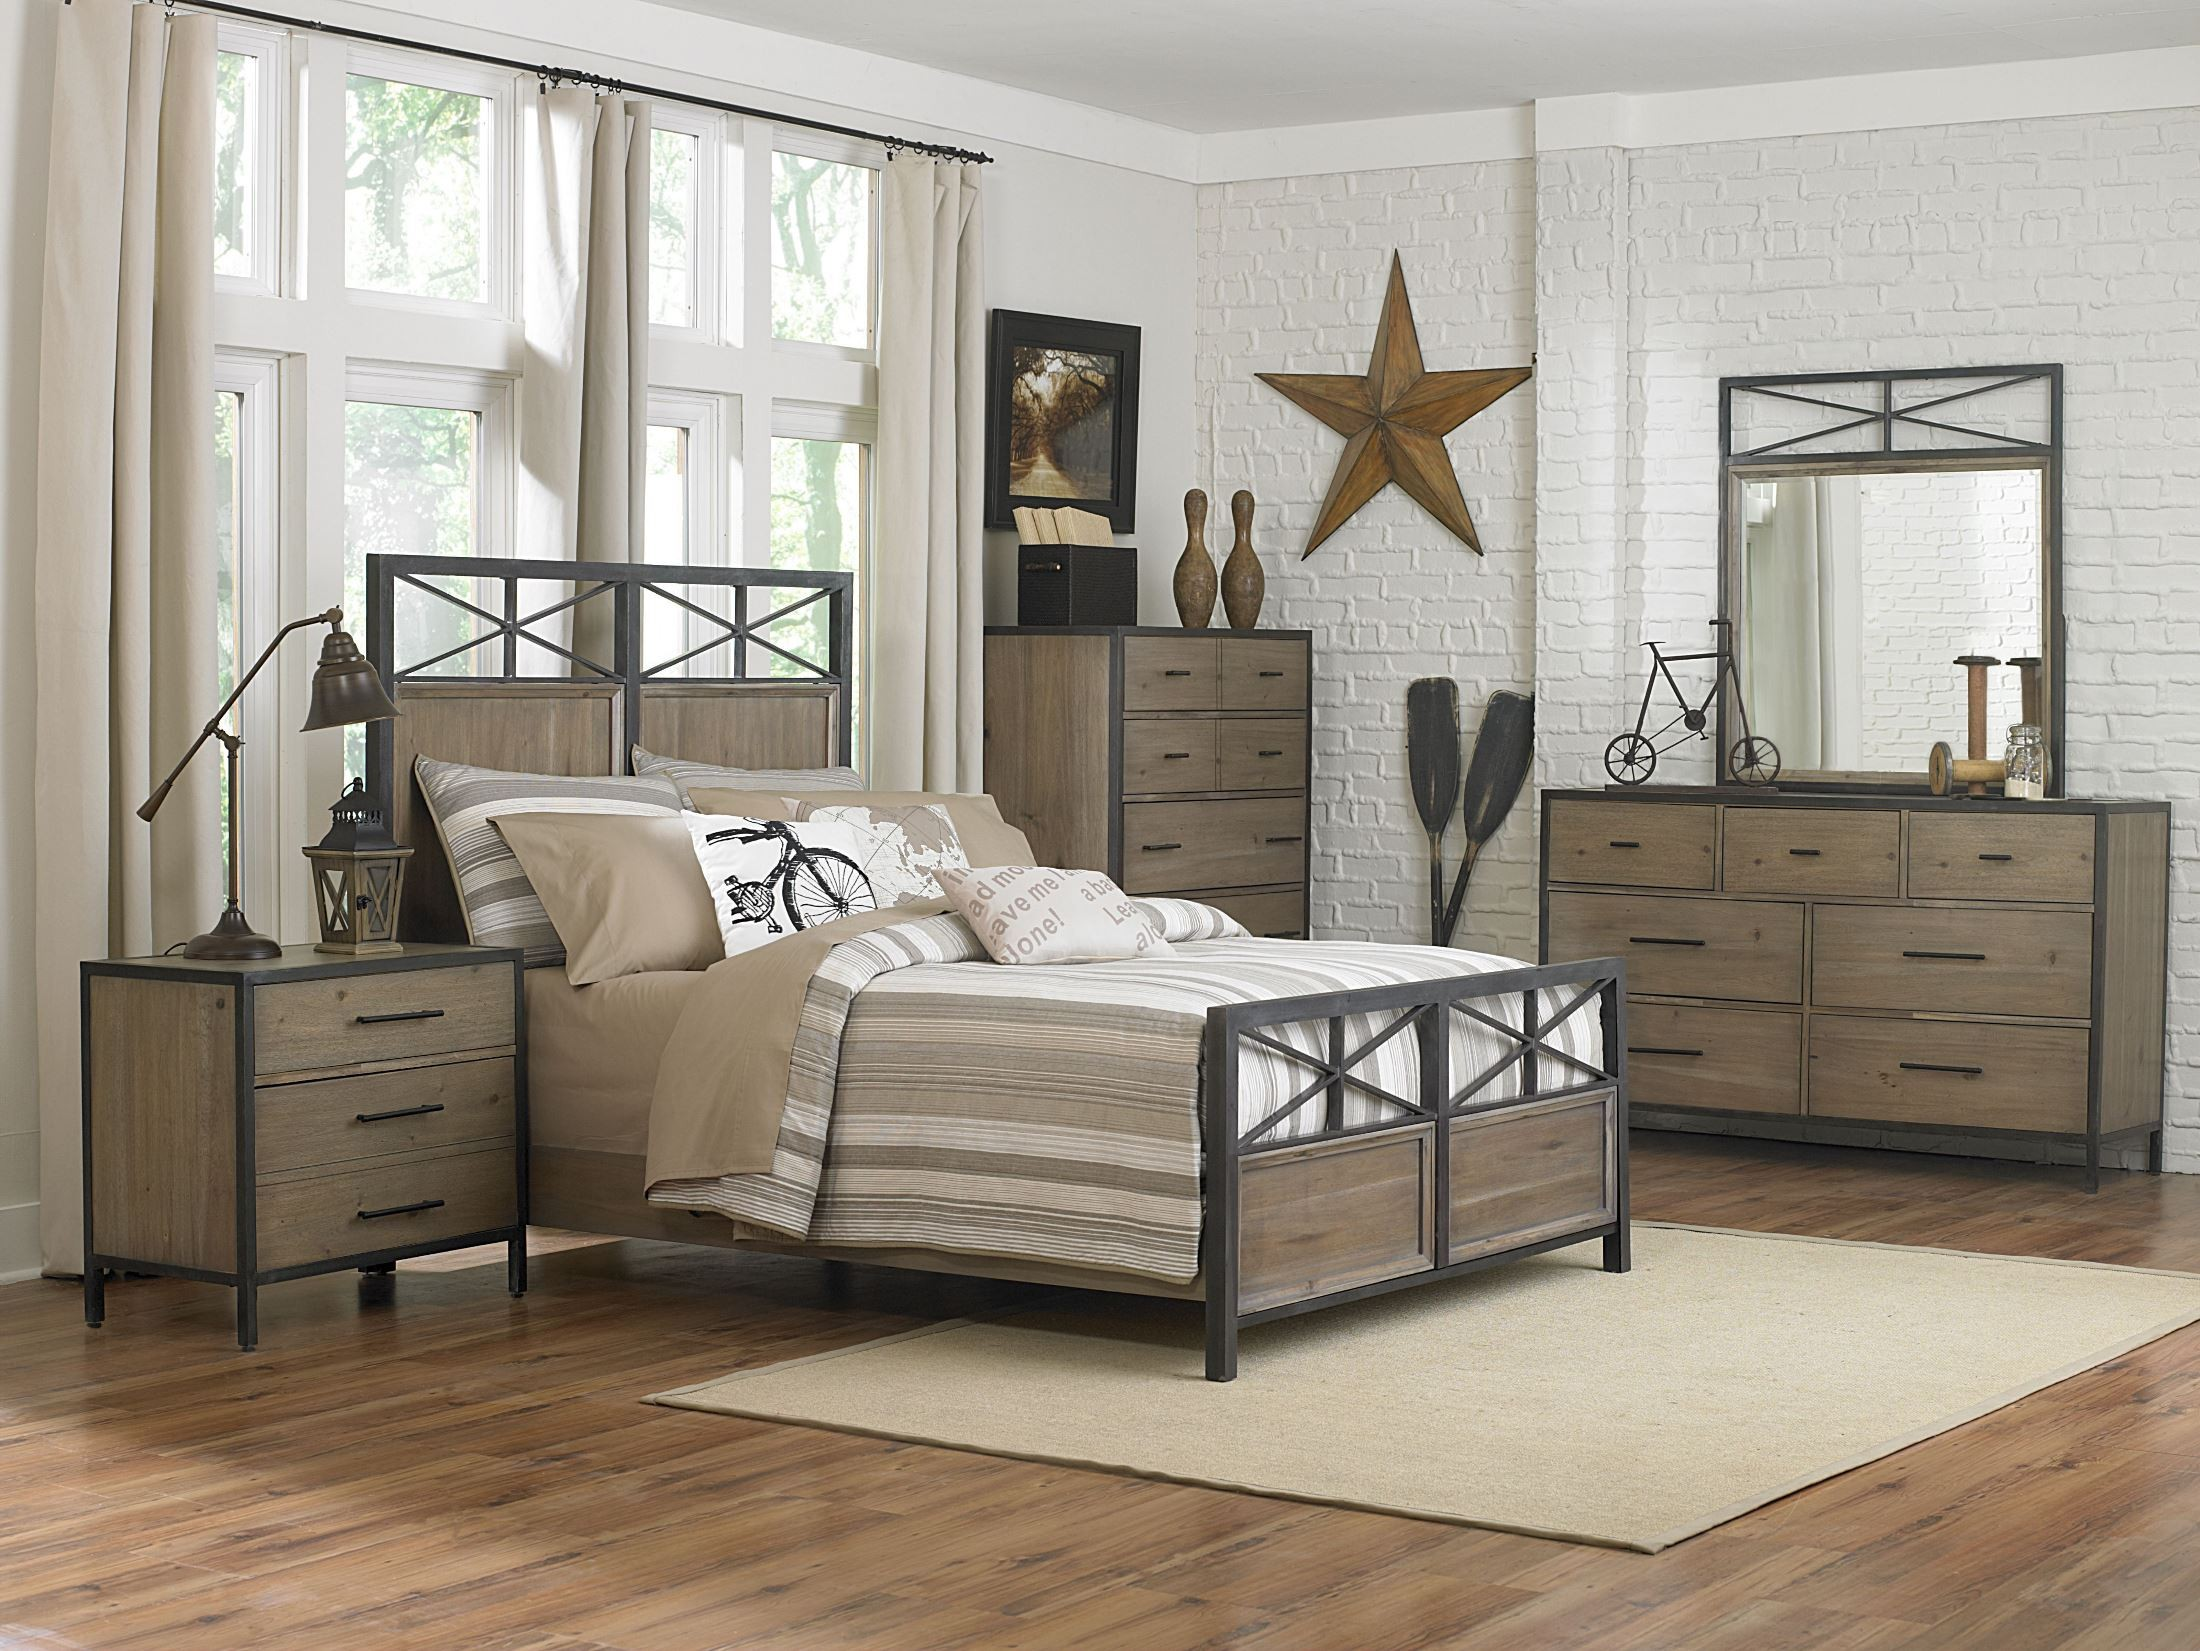 Bailey Metal Wood Panel Bedroom Set Y2159 58H 58F 58R Magnussen Furniture